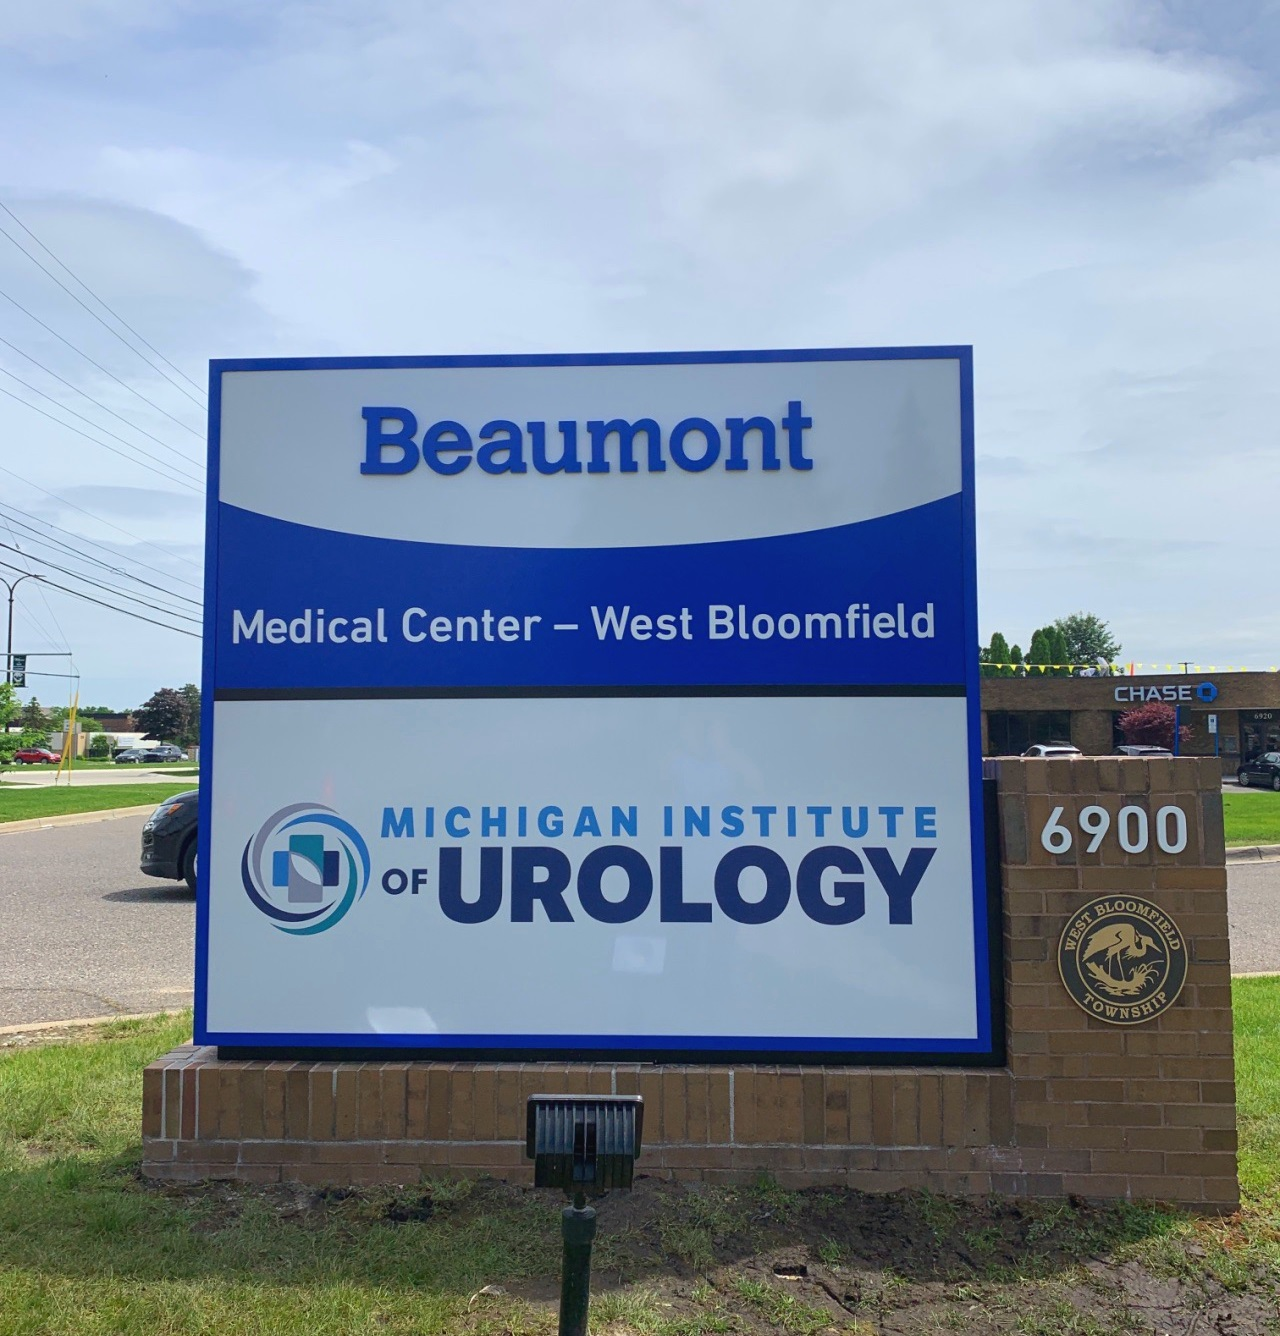 Michigan Institute of Urology Monument Sign